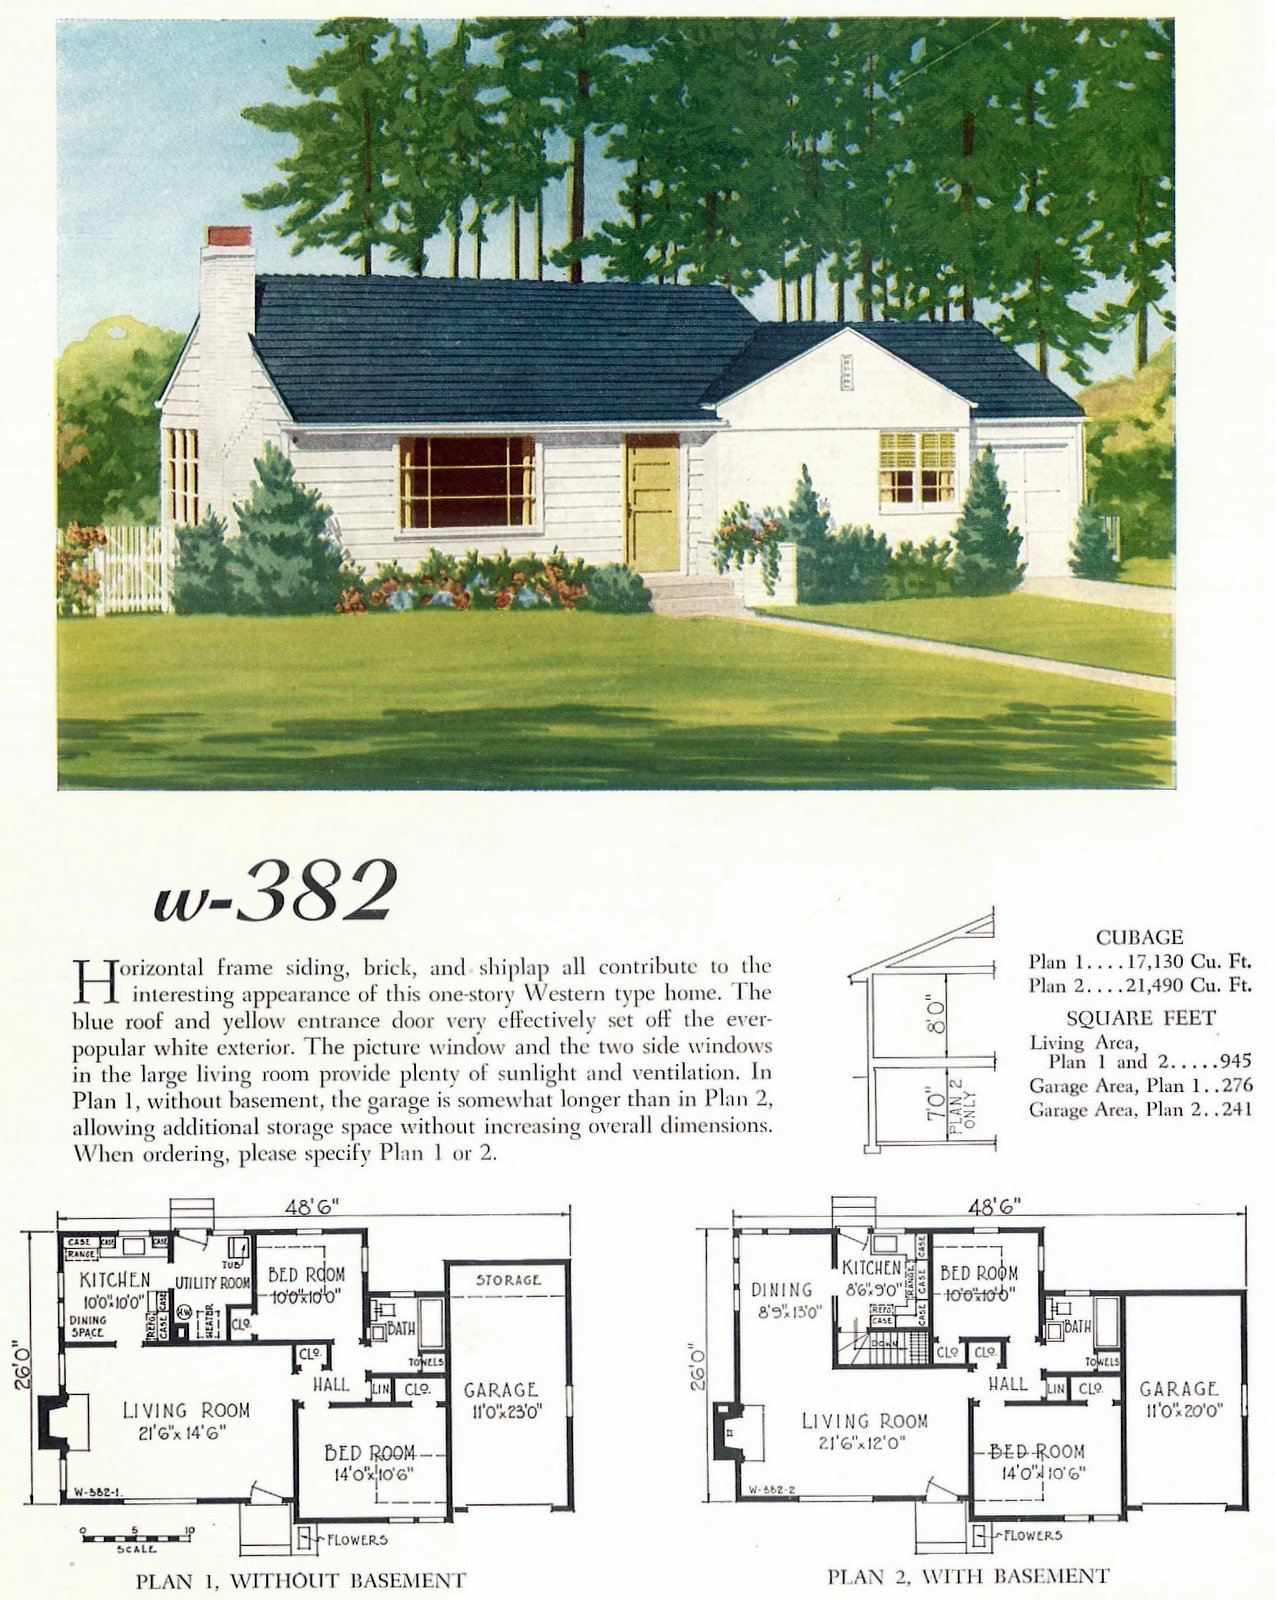 Old 40s post-war small starter home designs from 1948 (1)